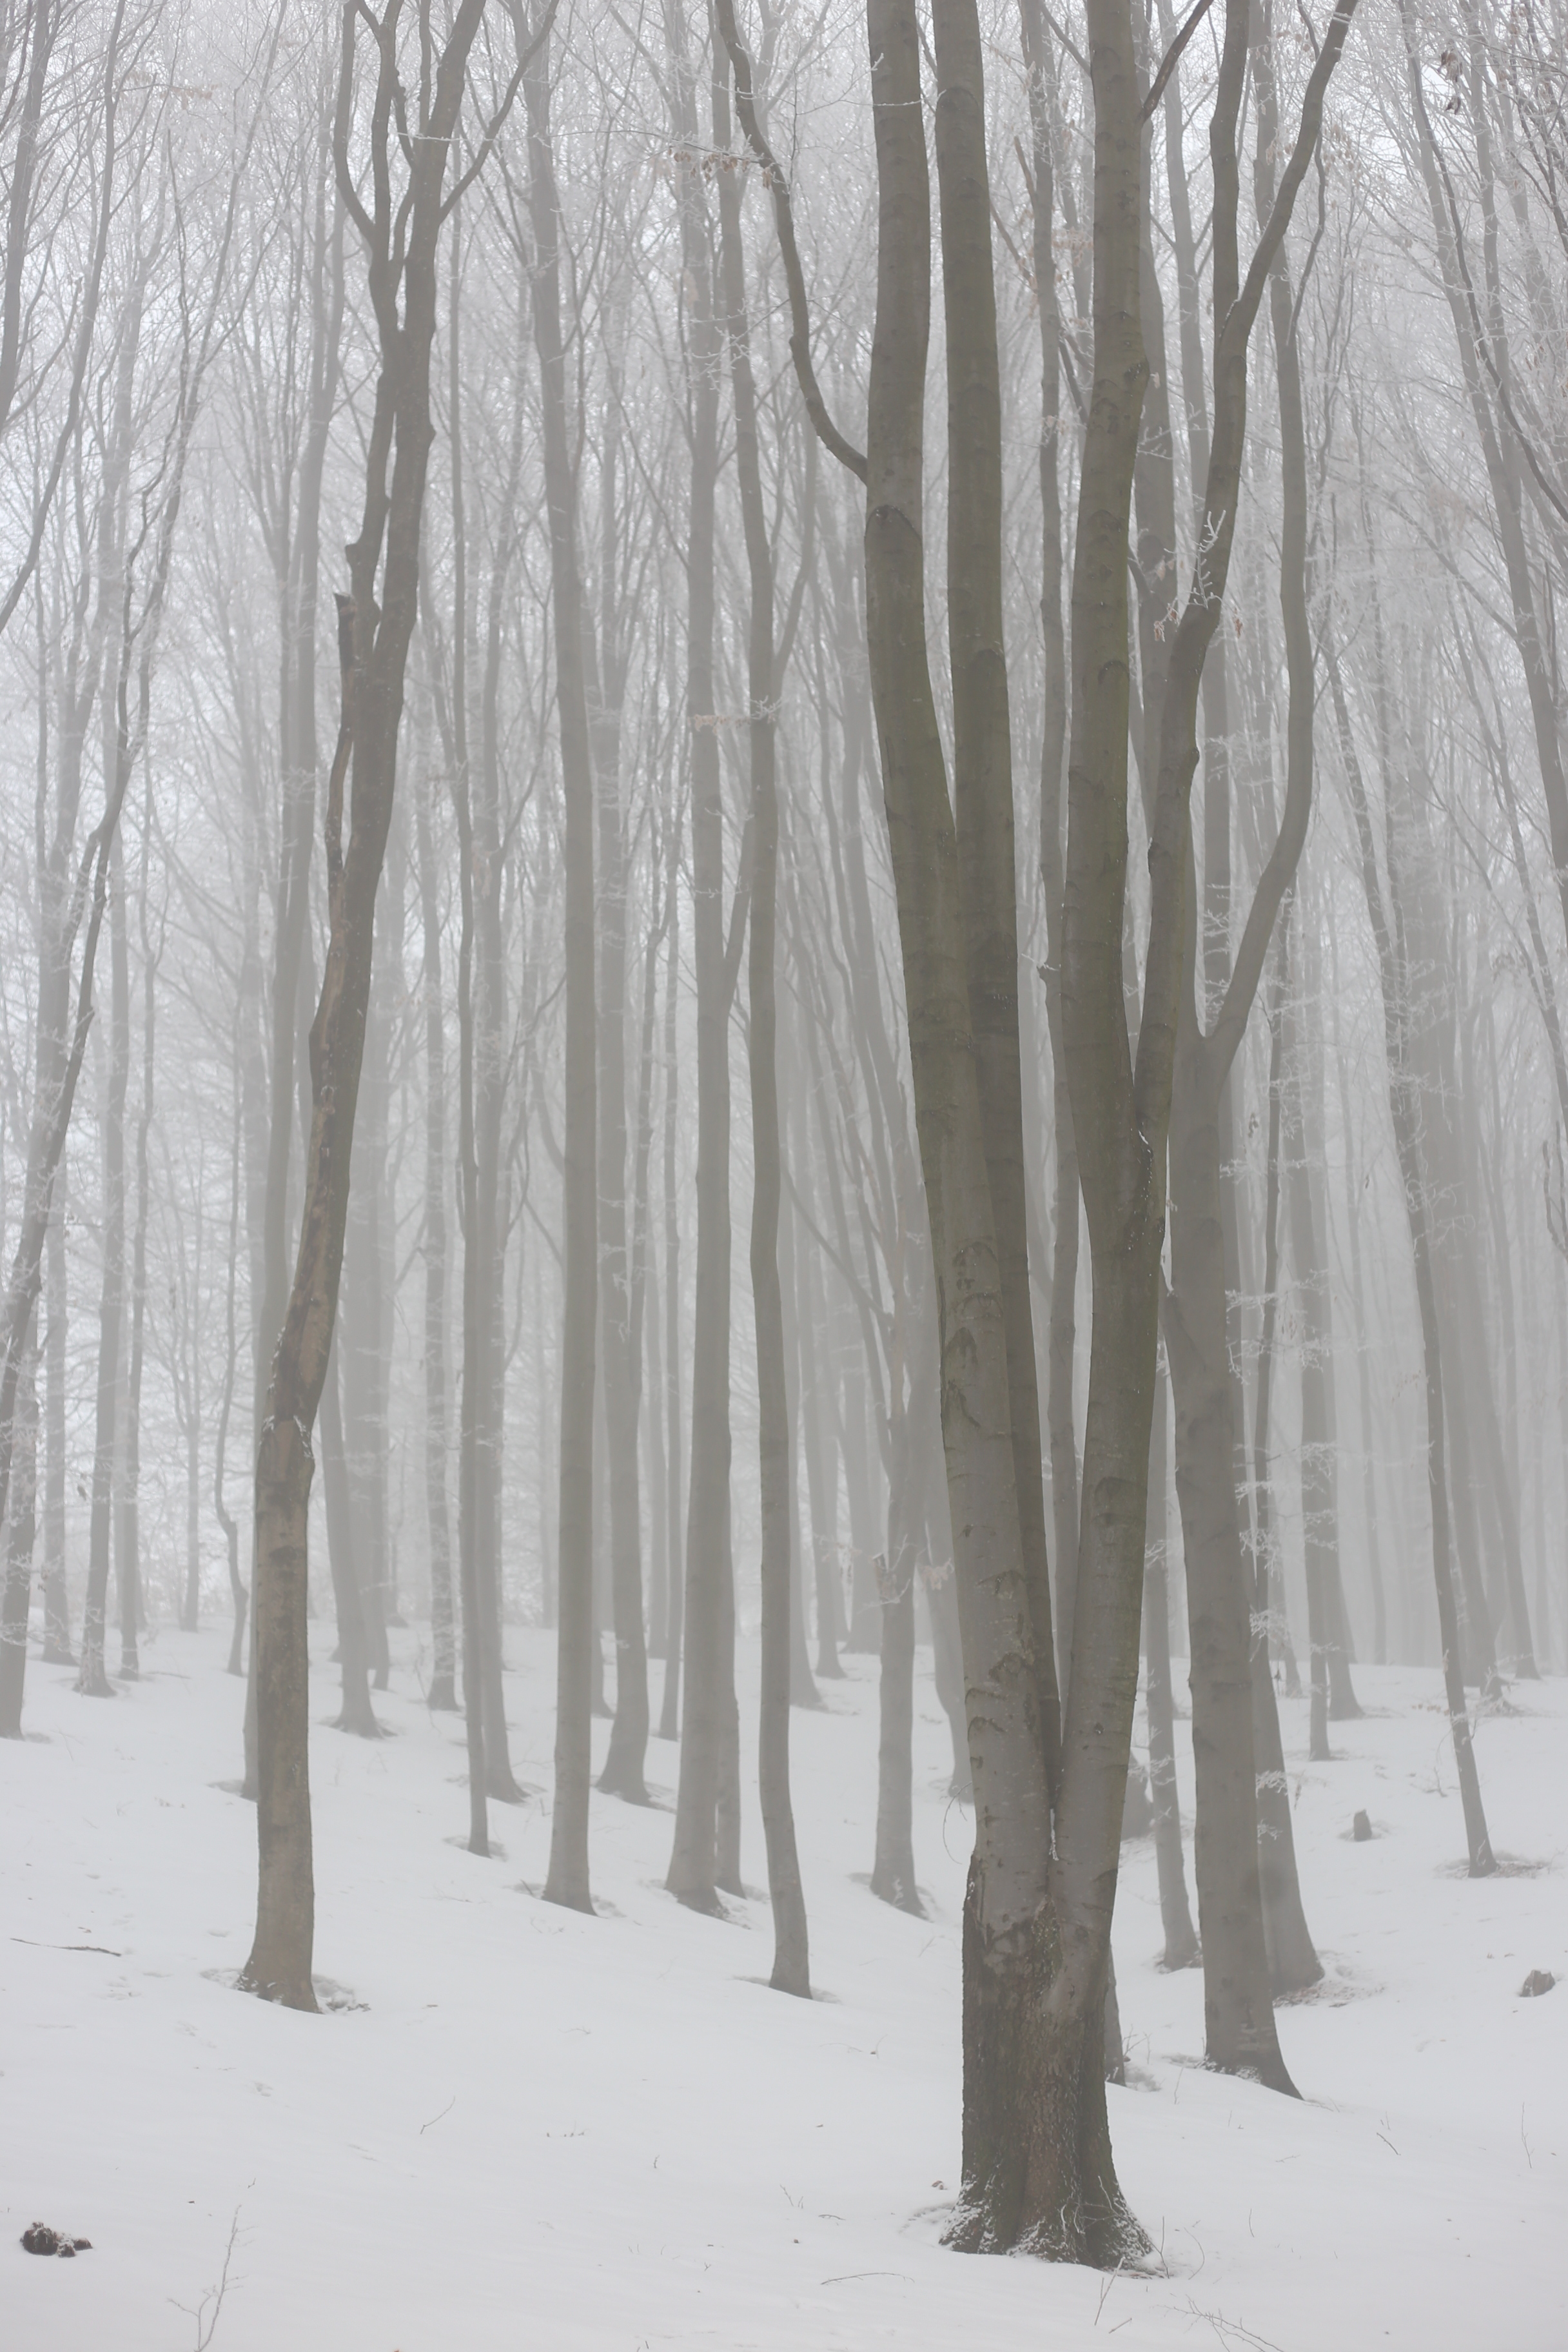 Bare tree trunks in a forest of white frost.